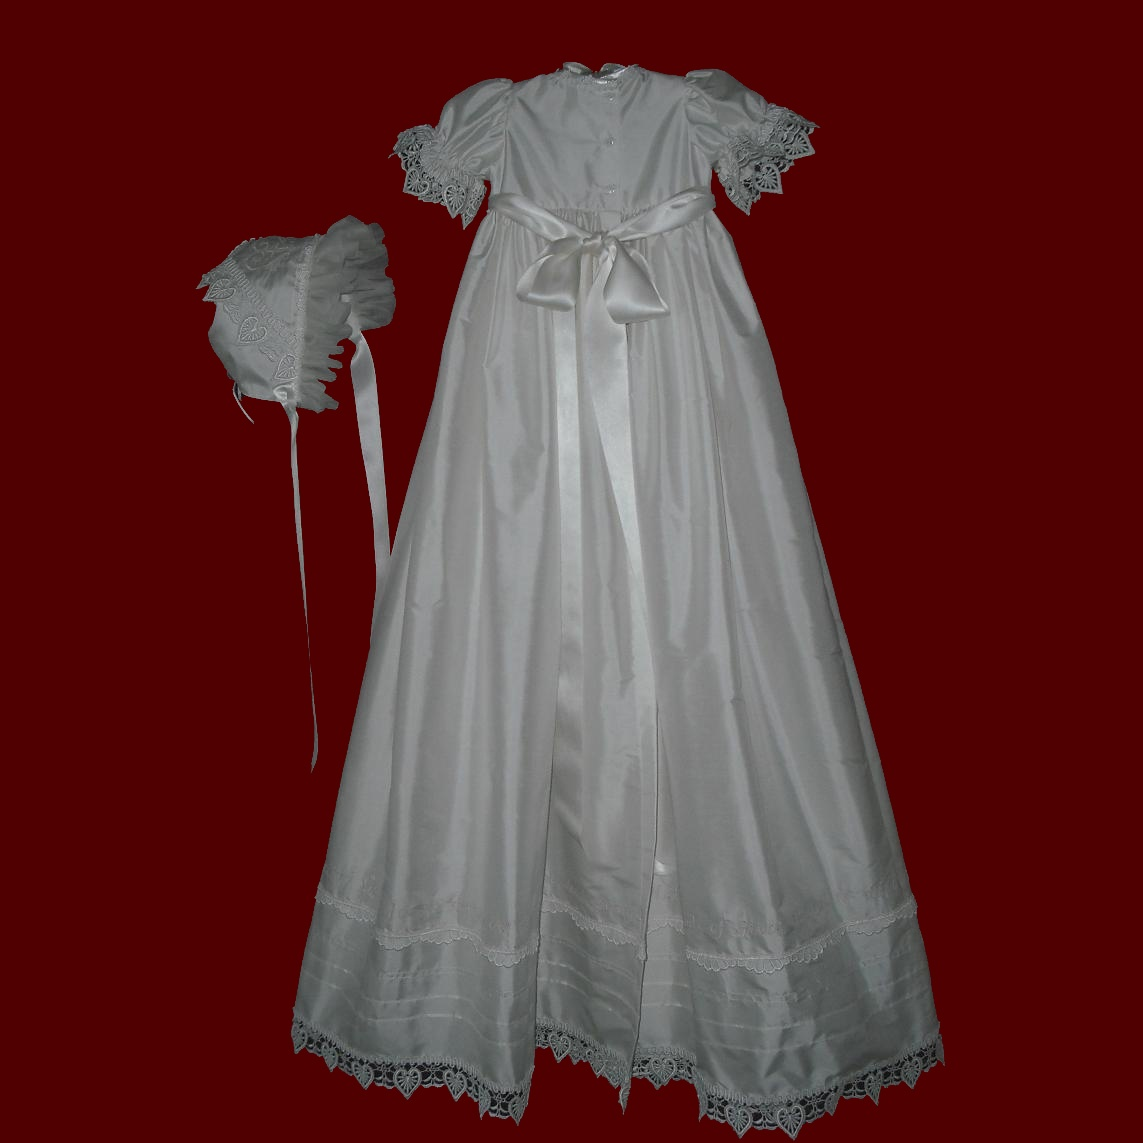 Cinderella Christening Gowns Girls: The Hail Mary Christening Gown For Girls